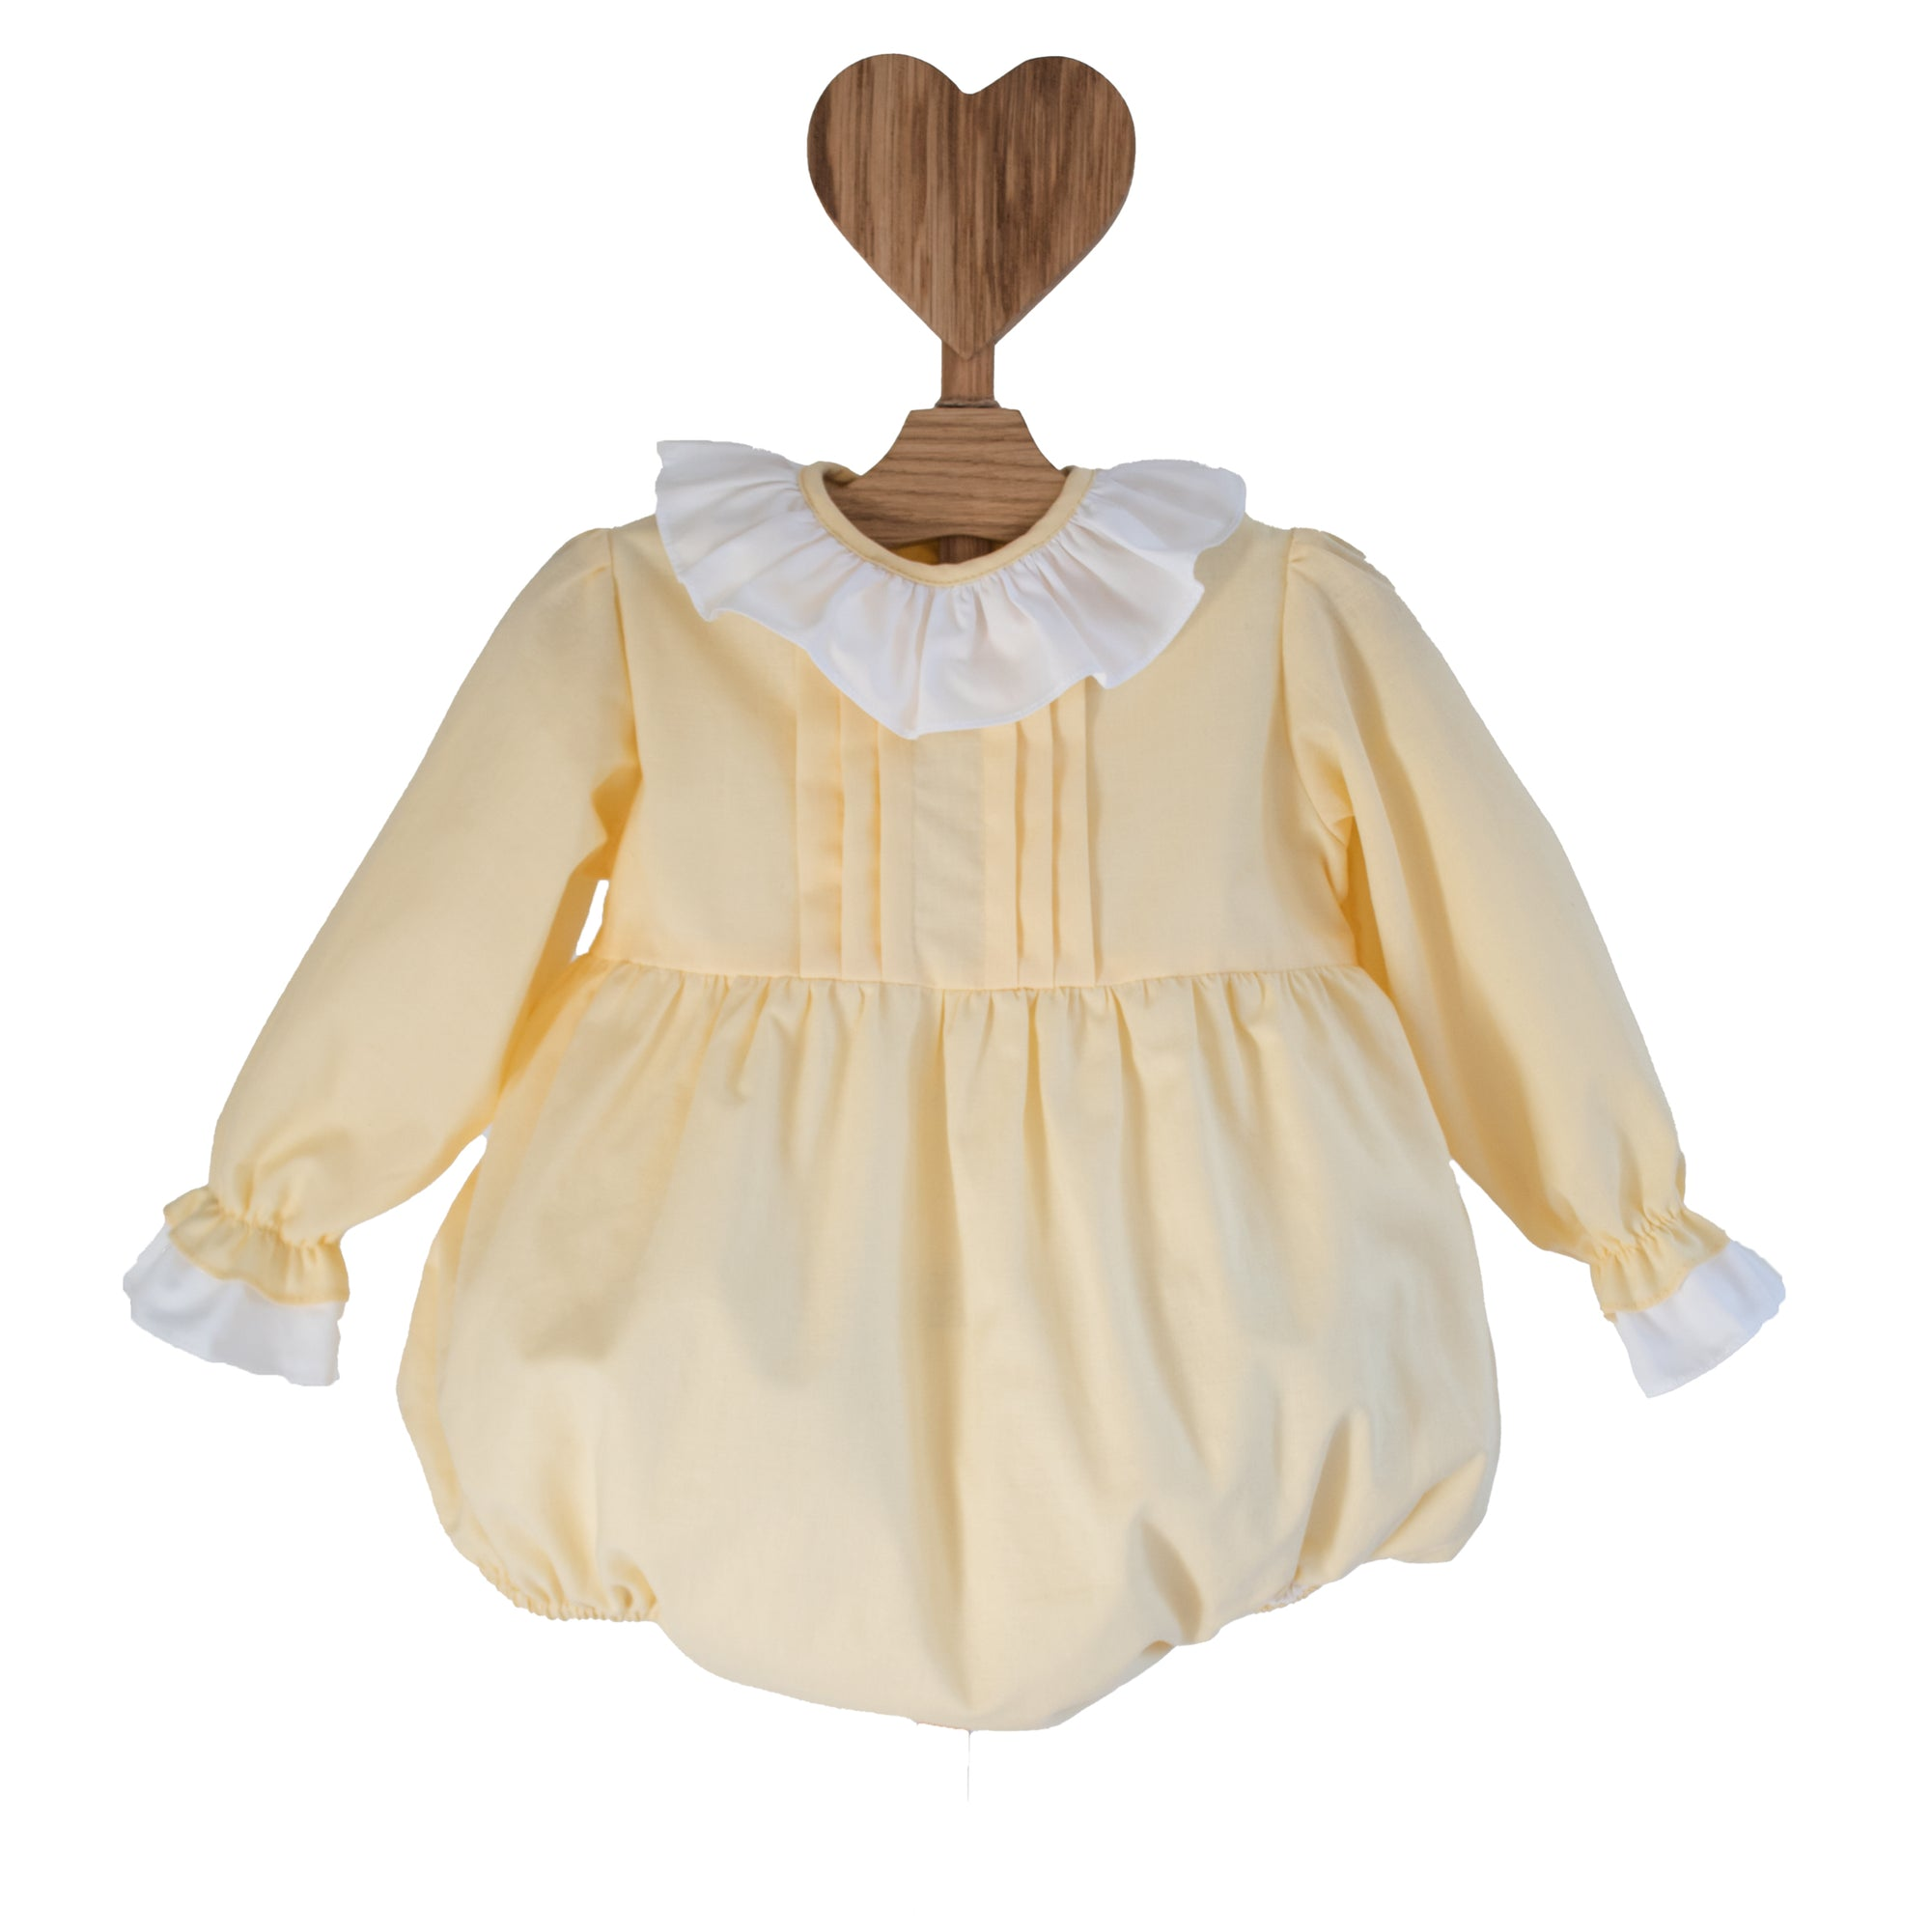 pale yellow traditional baby romper with white collar and bow, made in portugal